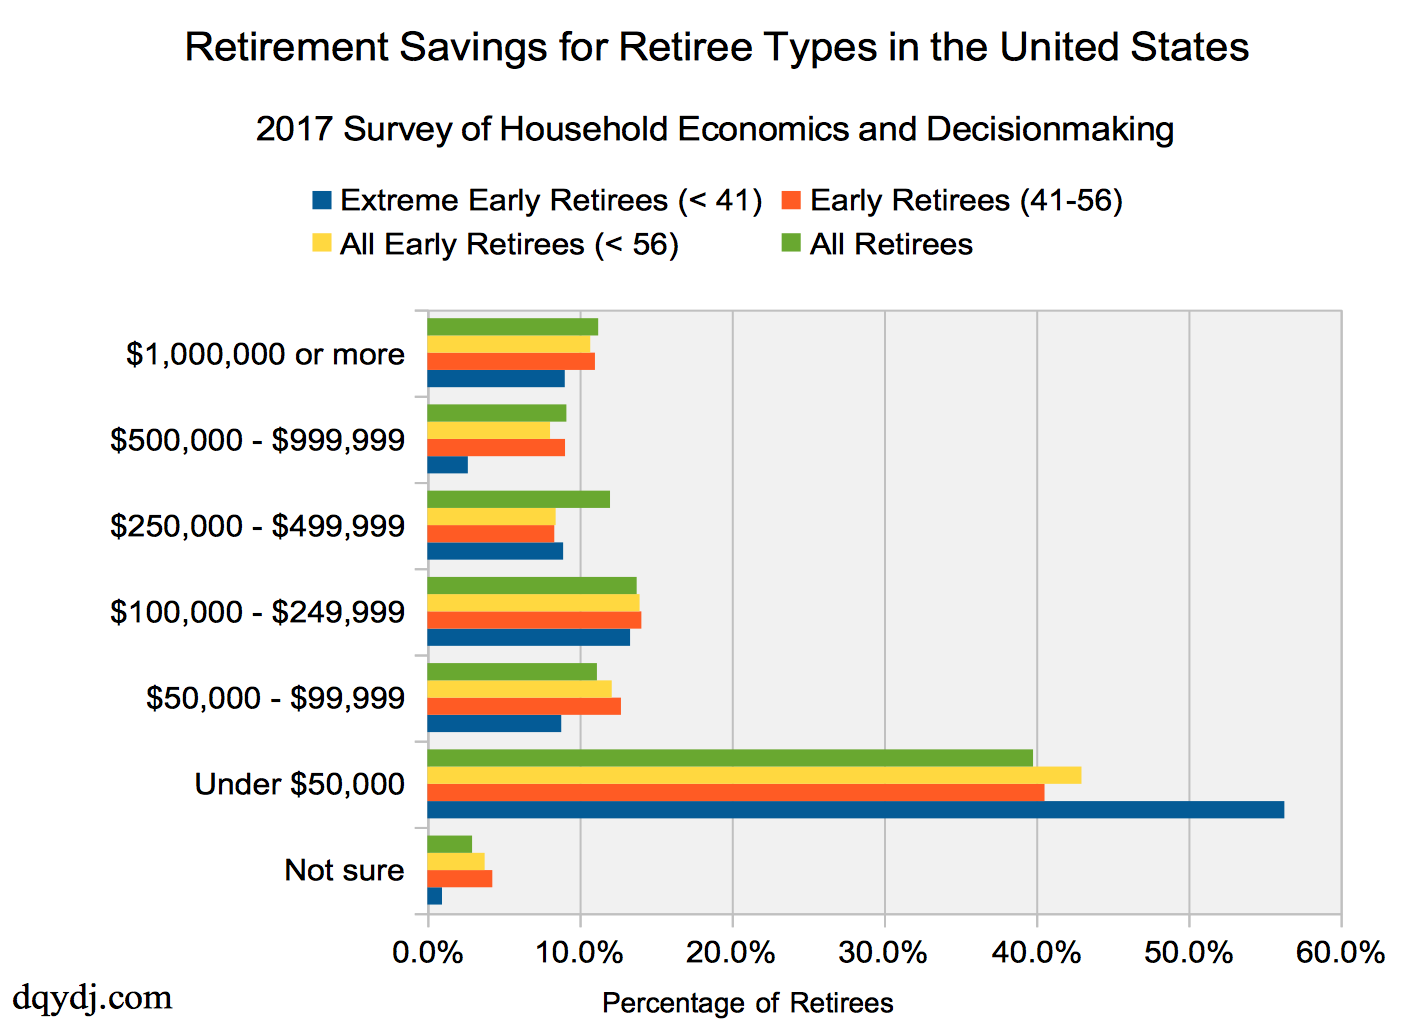 retirees needs current savings The average retirement savings is about $104,000 for households with members ages 55 to 64 and $148,000 for households with members 65 to 74 years old, according to an analysis by the government.